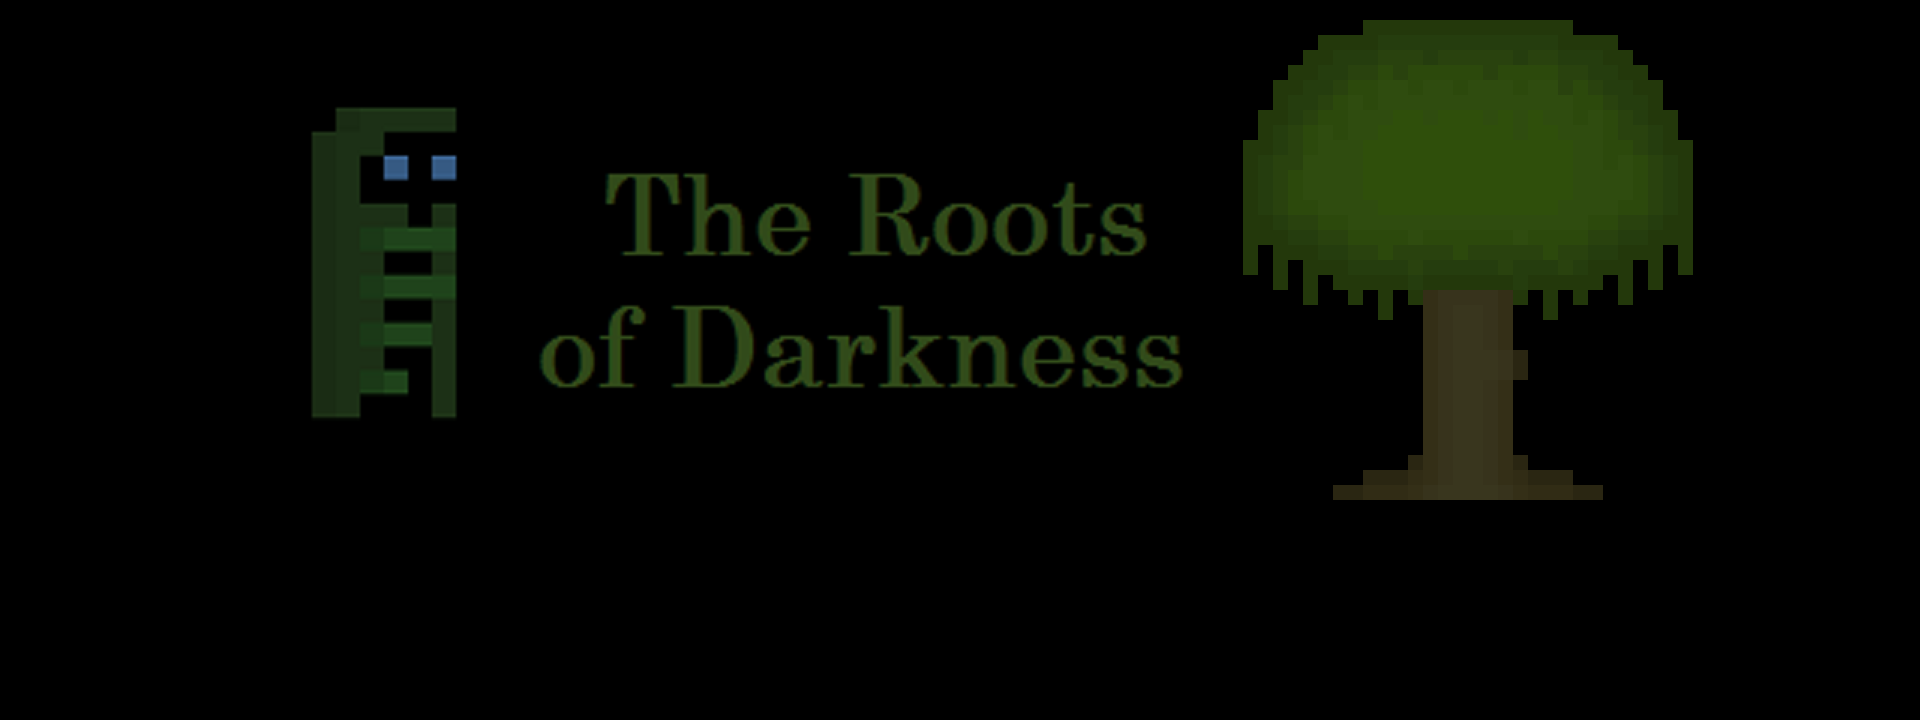 The Roots of Darkness